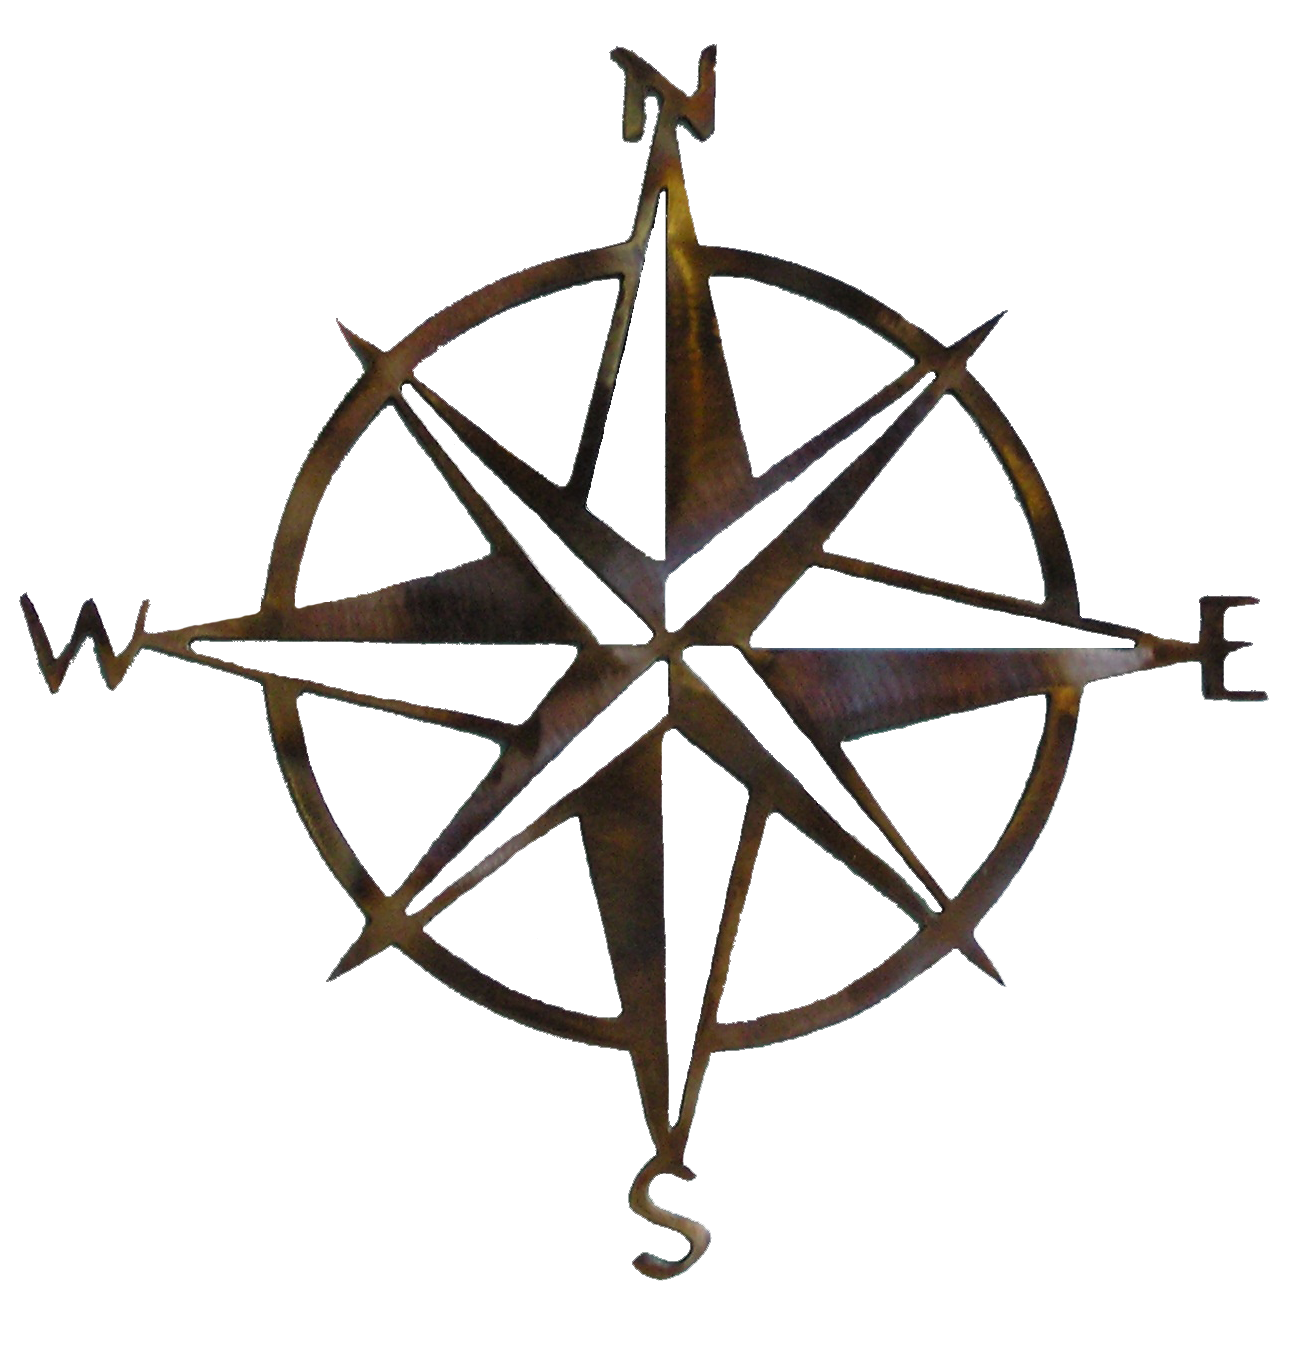 Free Compass Rose Transparent, Download Free Clip Art, Free Clip Art.